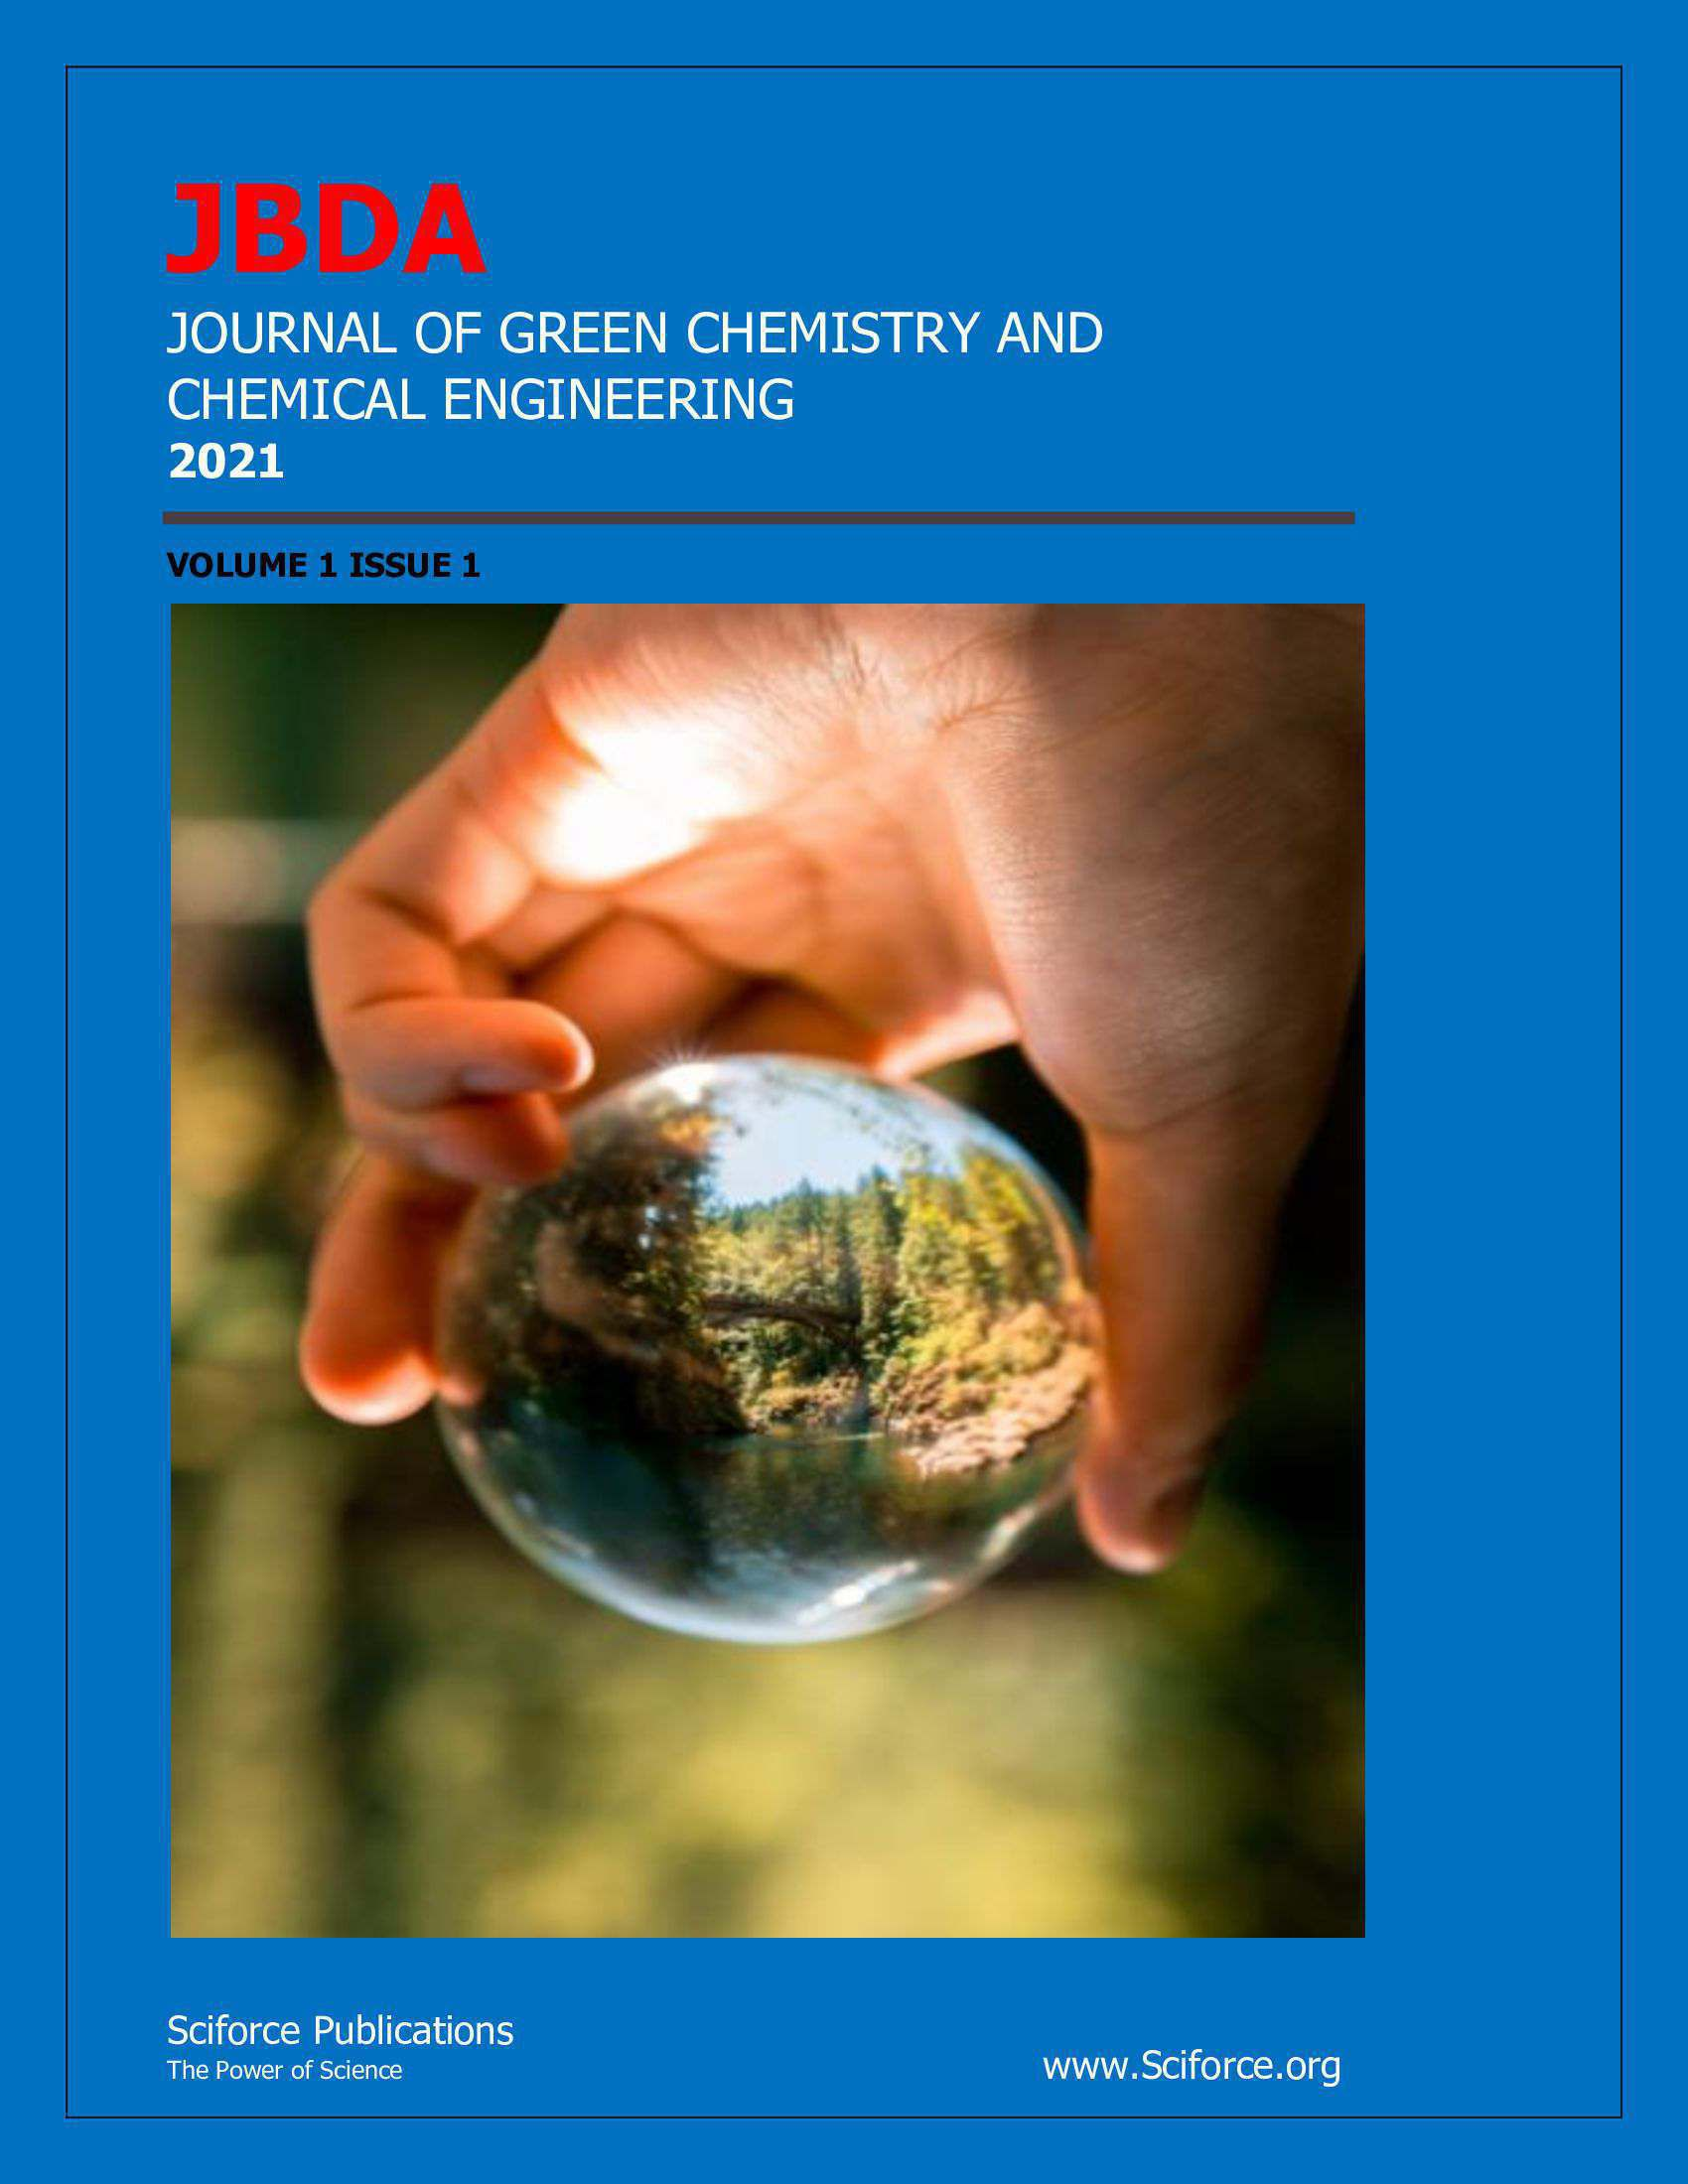 Journal of Green Chemistry and Chemical Engineering